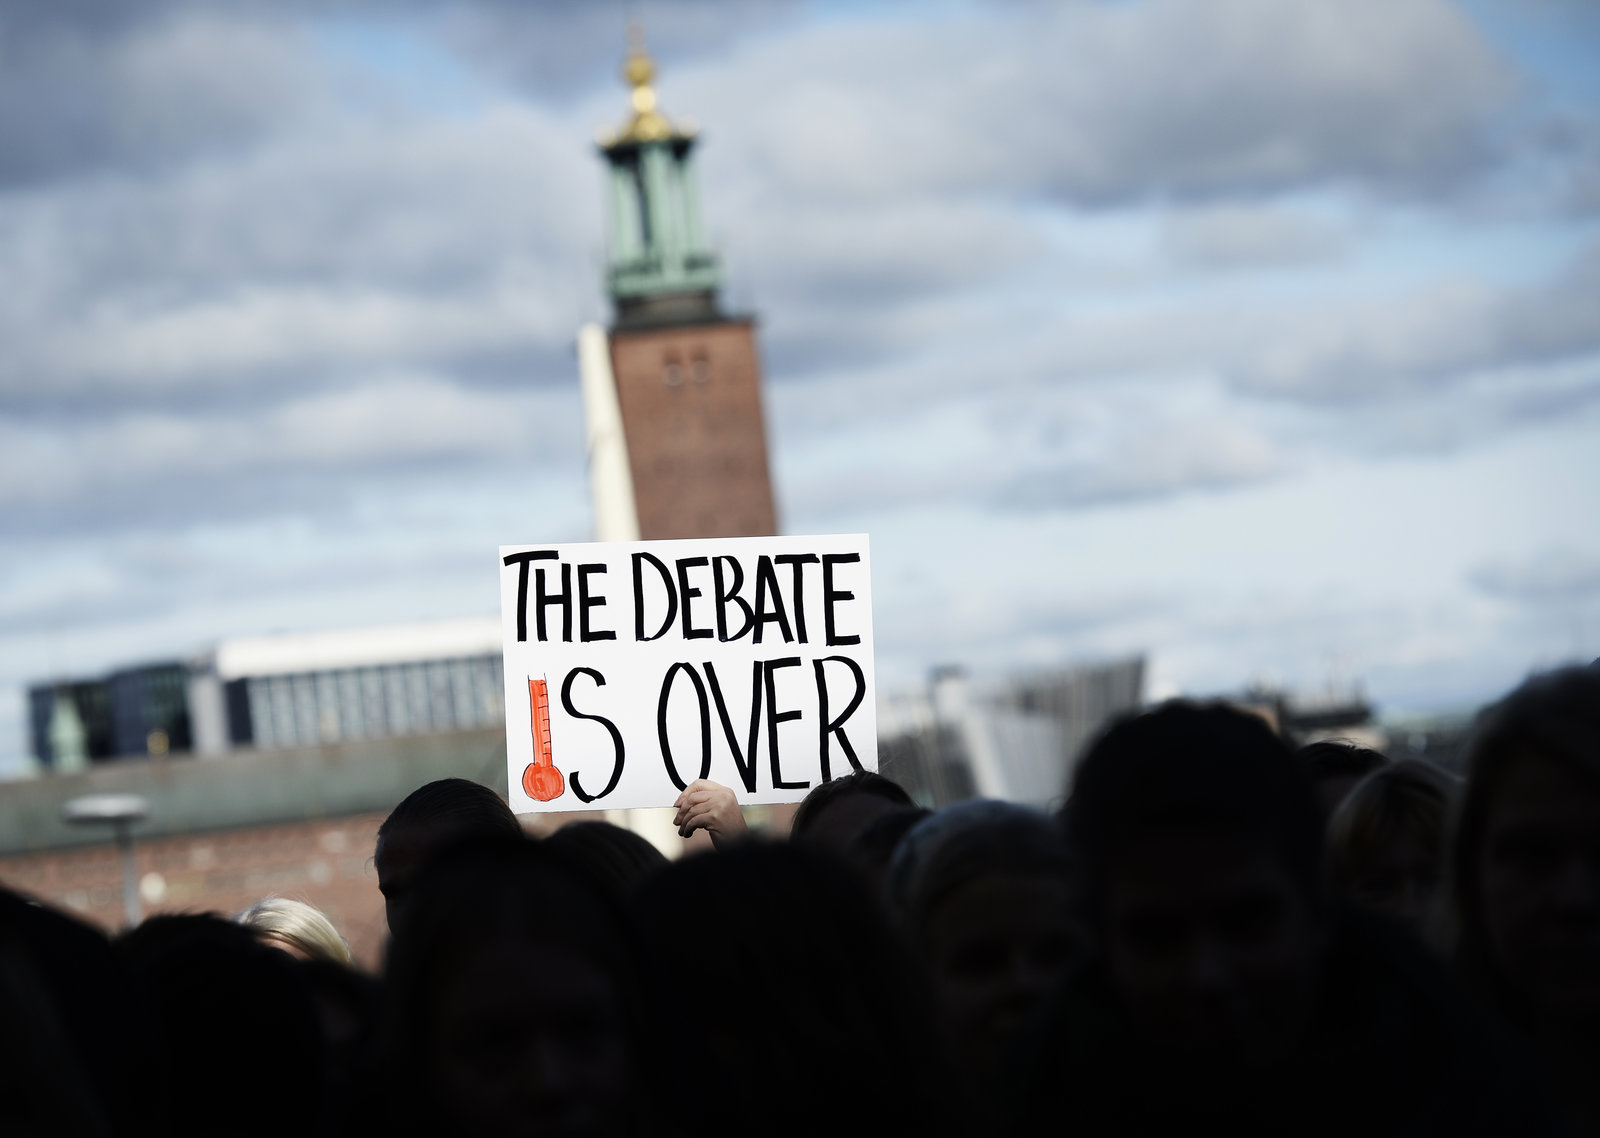 Public opinion in most of the world is in line with the science, but not in the U.S.